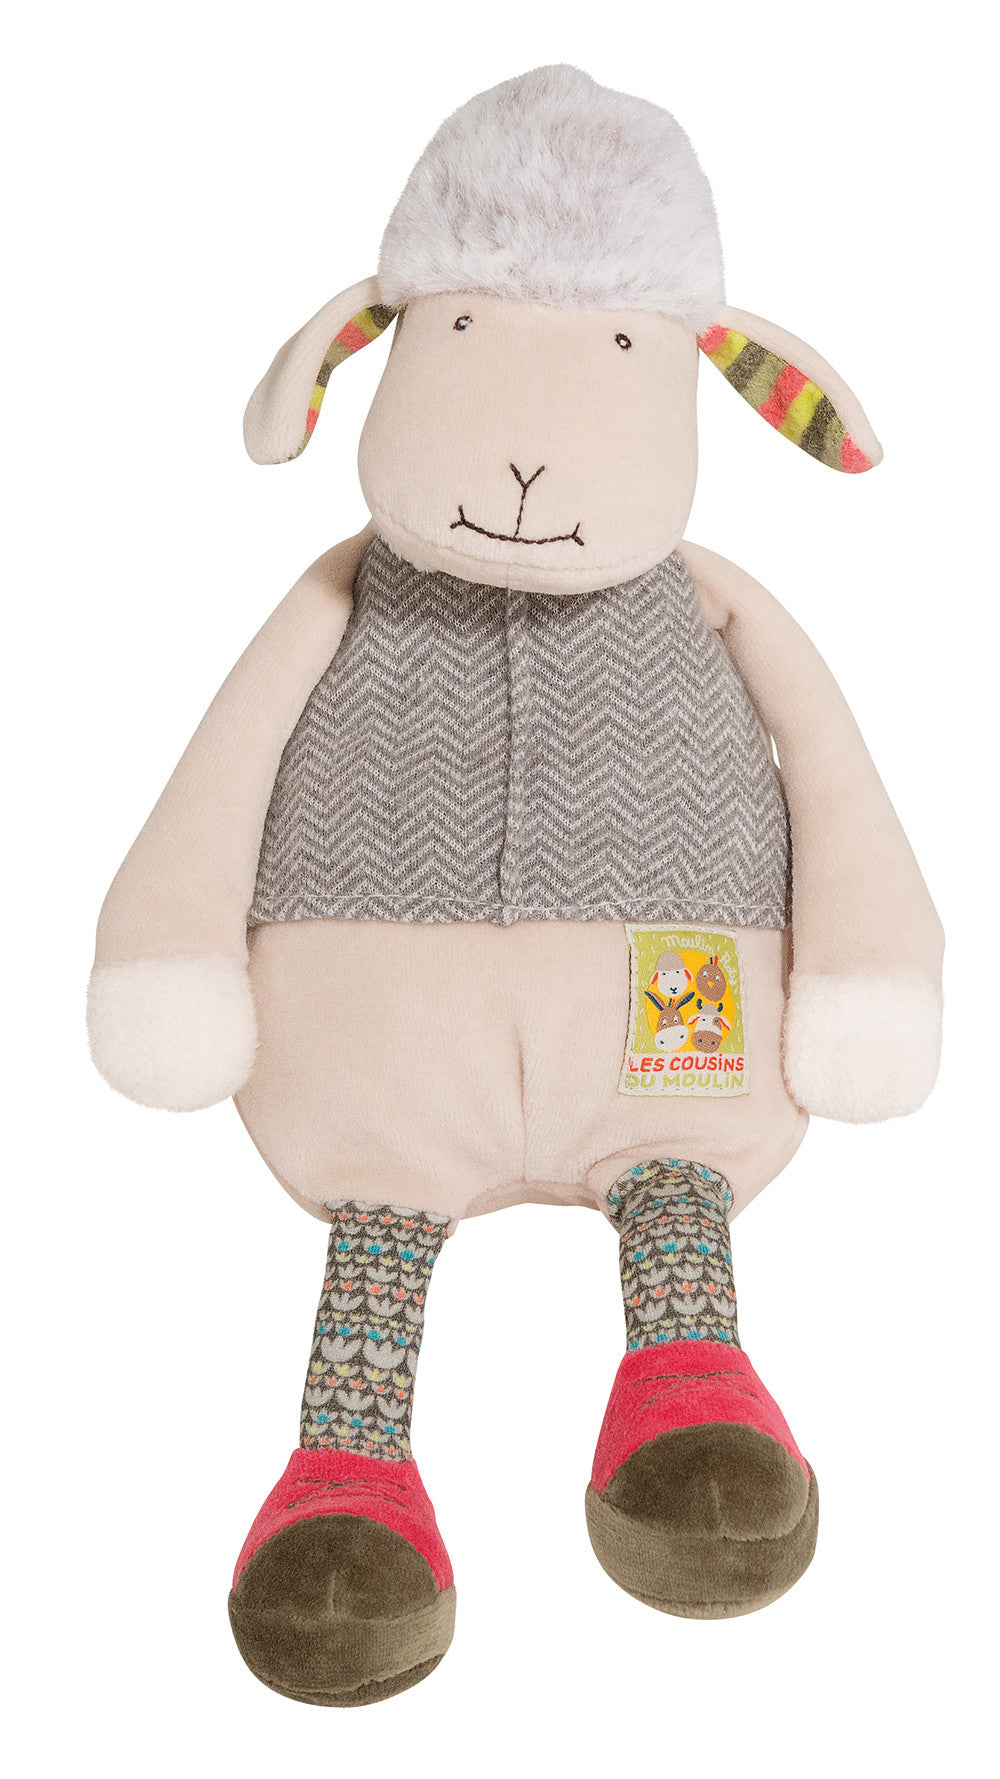 Baa-Baa the Ragamuffin Sheep - babyragsnstuff